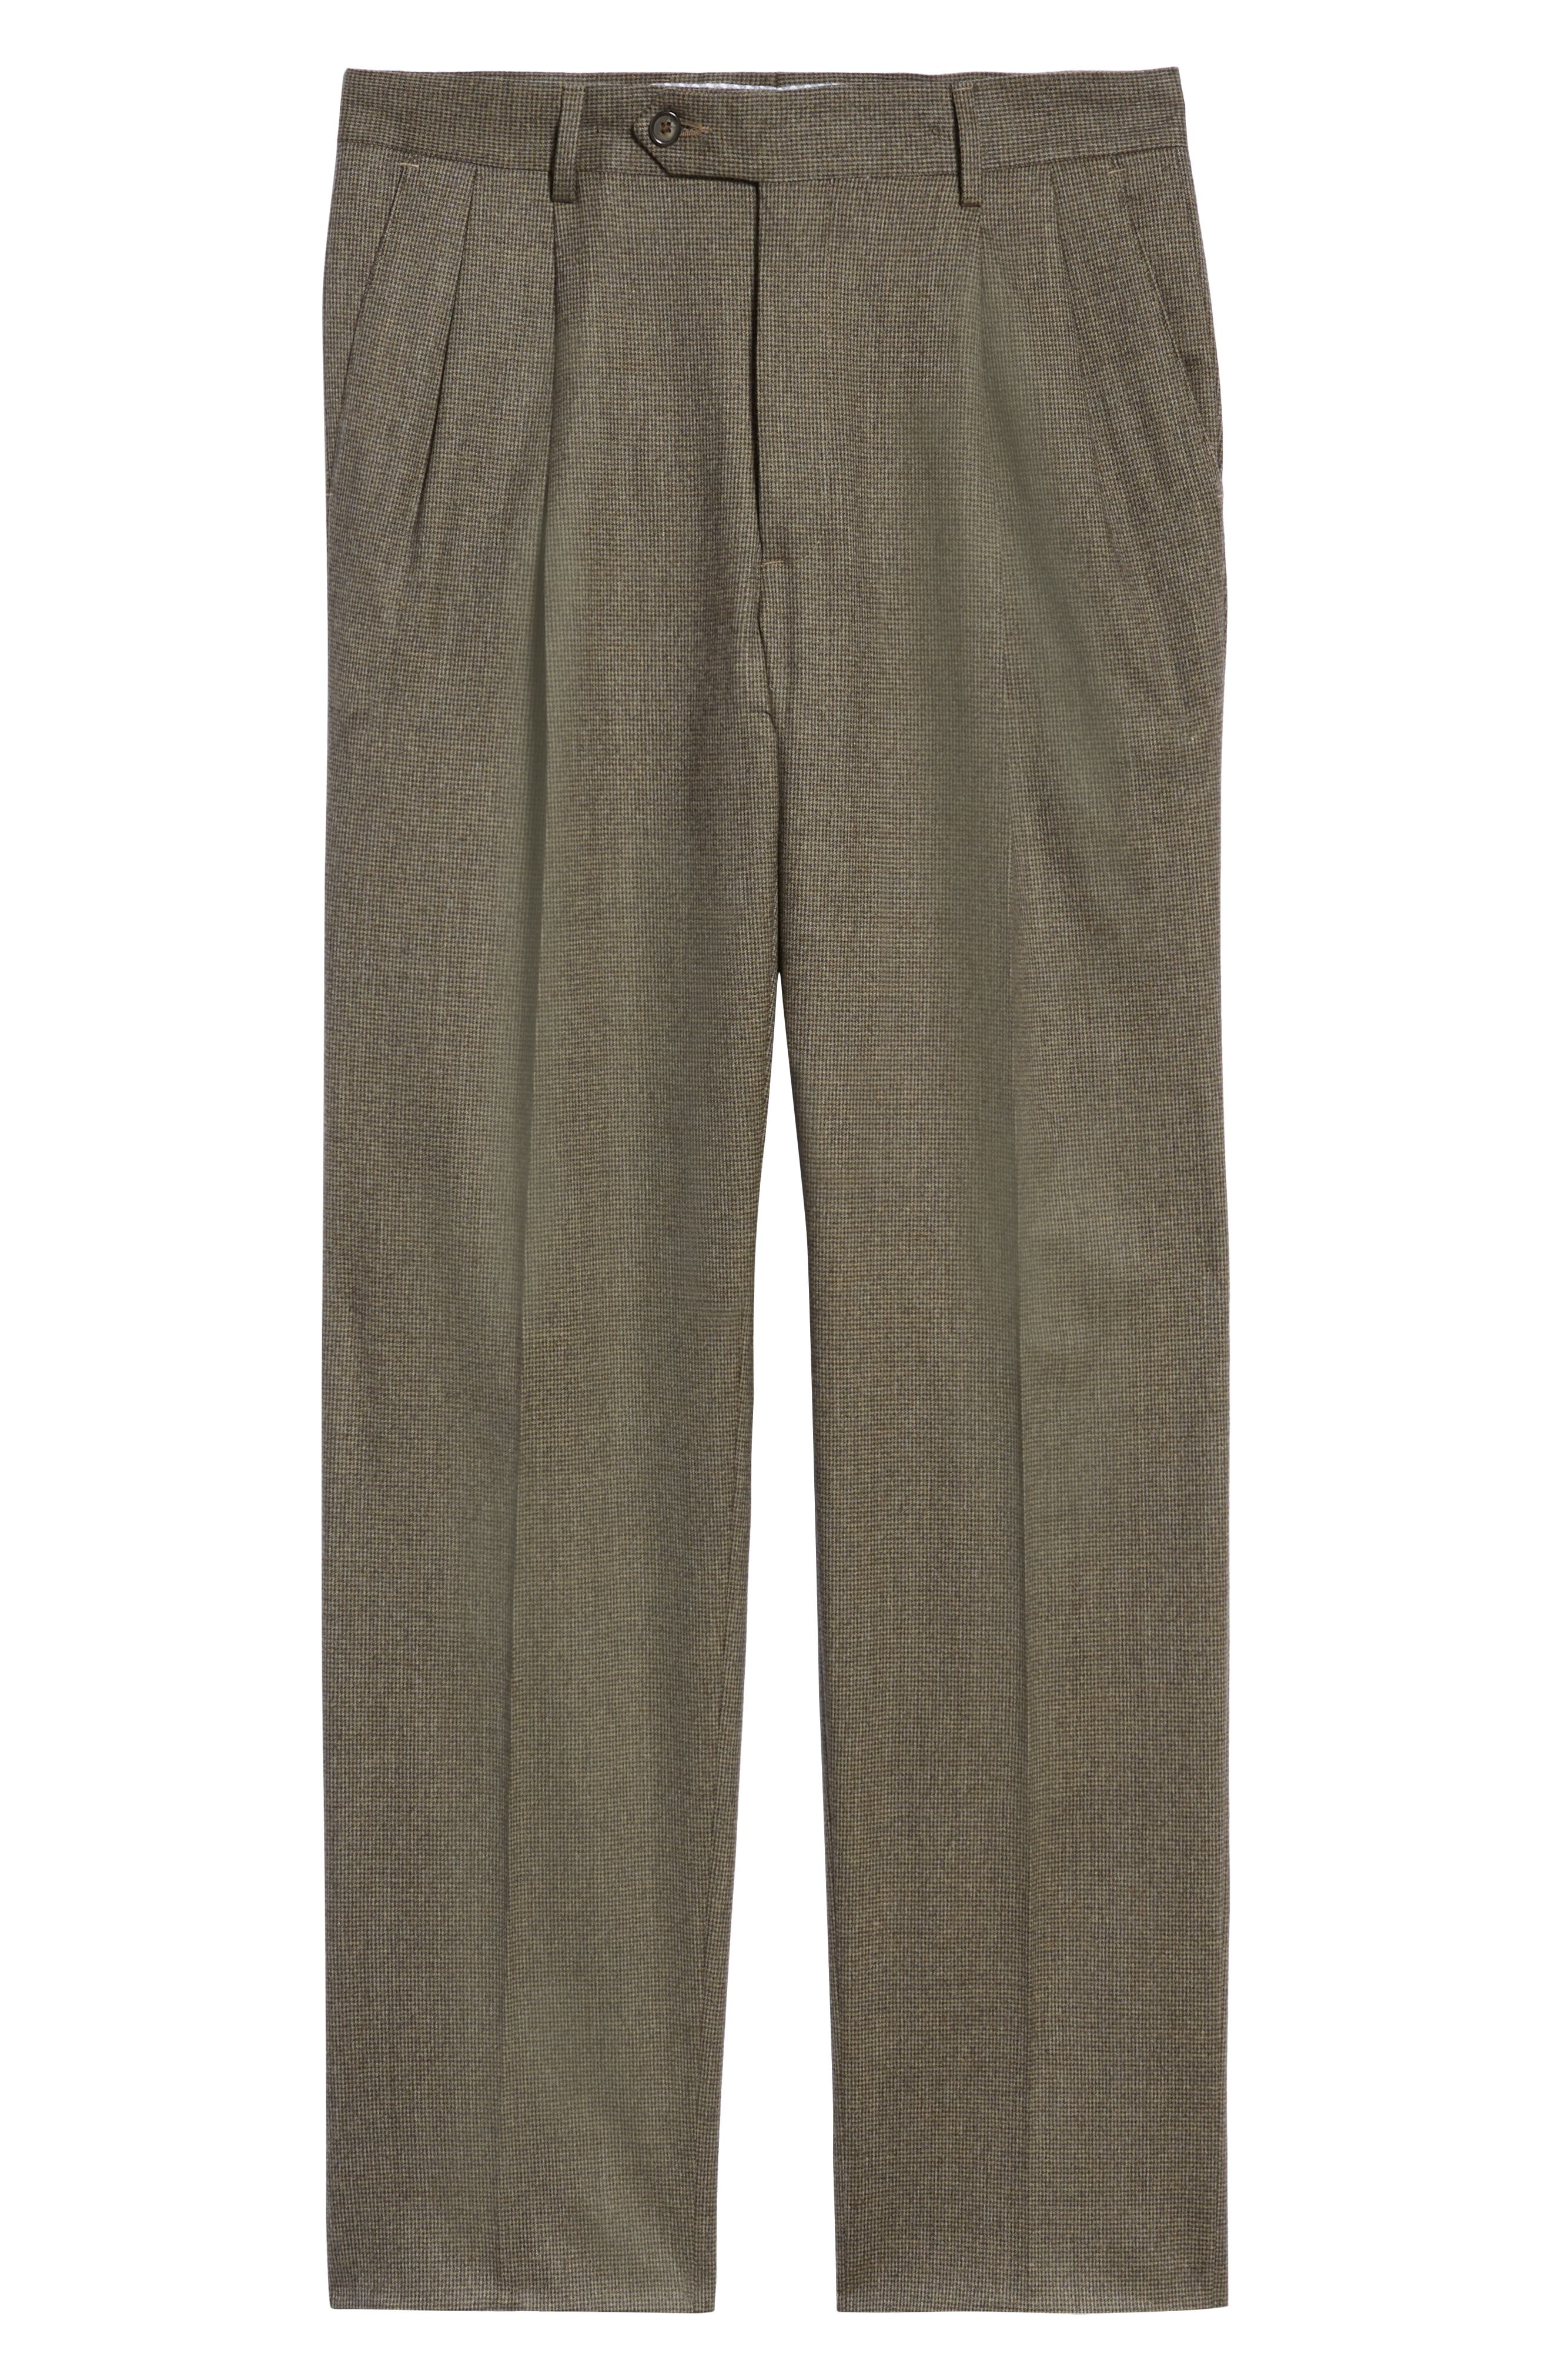 Pleated Stretch Houndstooth Wool Trousers,                             Alternate thumbnail 6, color,                             TAN